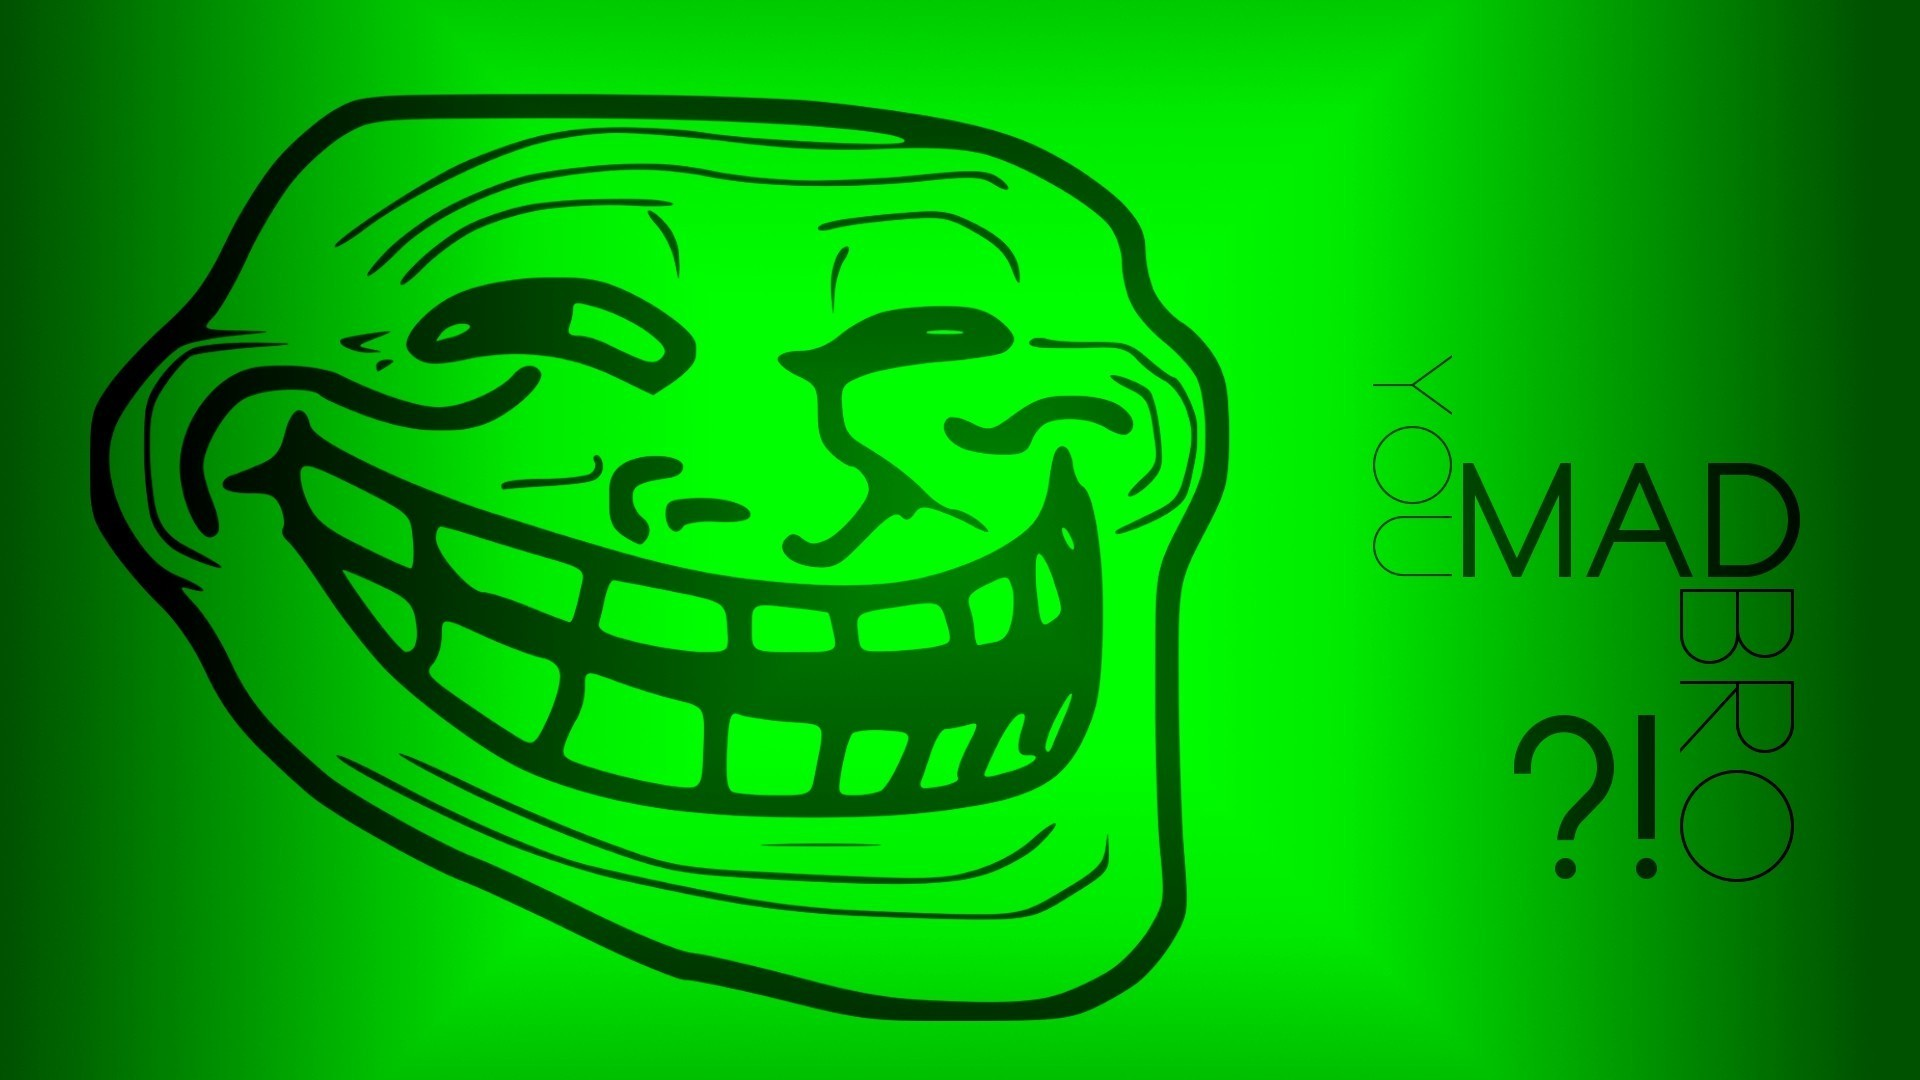 Internet funny green trollface wallpaper allwallpaper 1259 internet funny green trollface wallpaper voltagebd Gallery